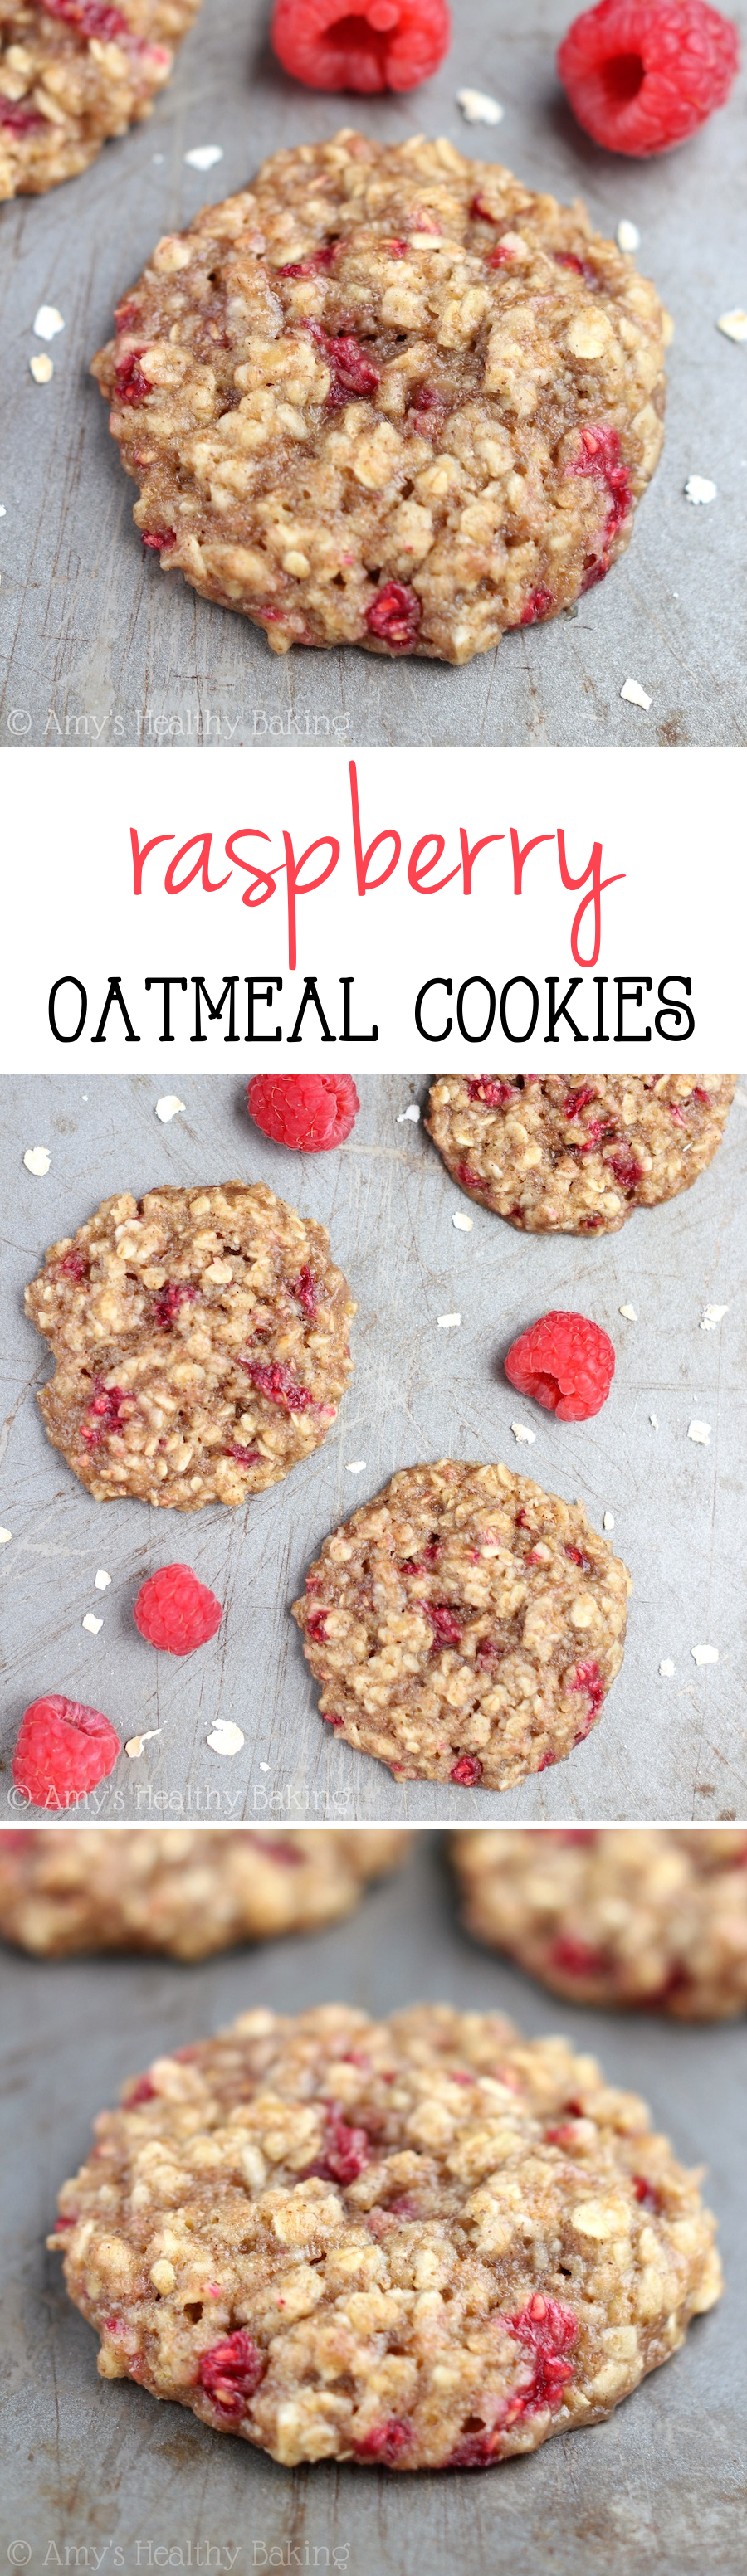 Clean Eating Raspberry Oatmeal Cookies Recipe